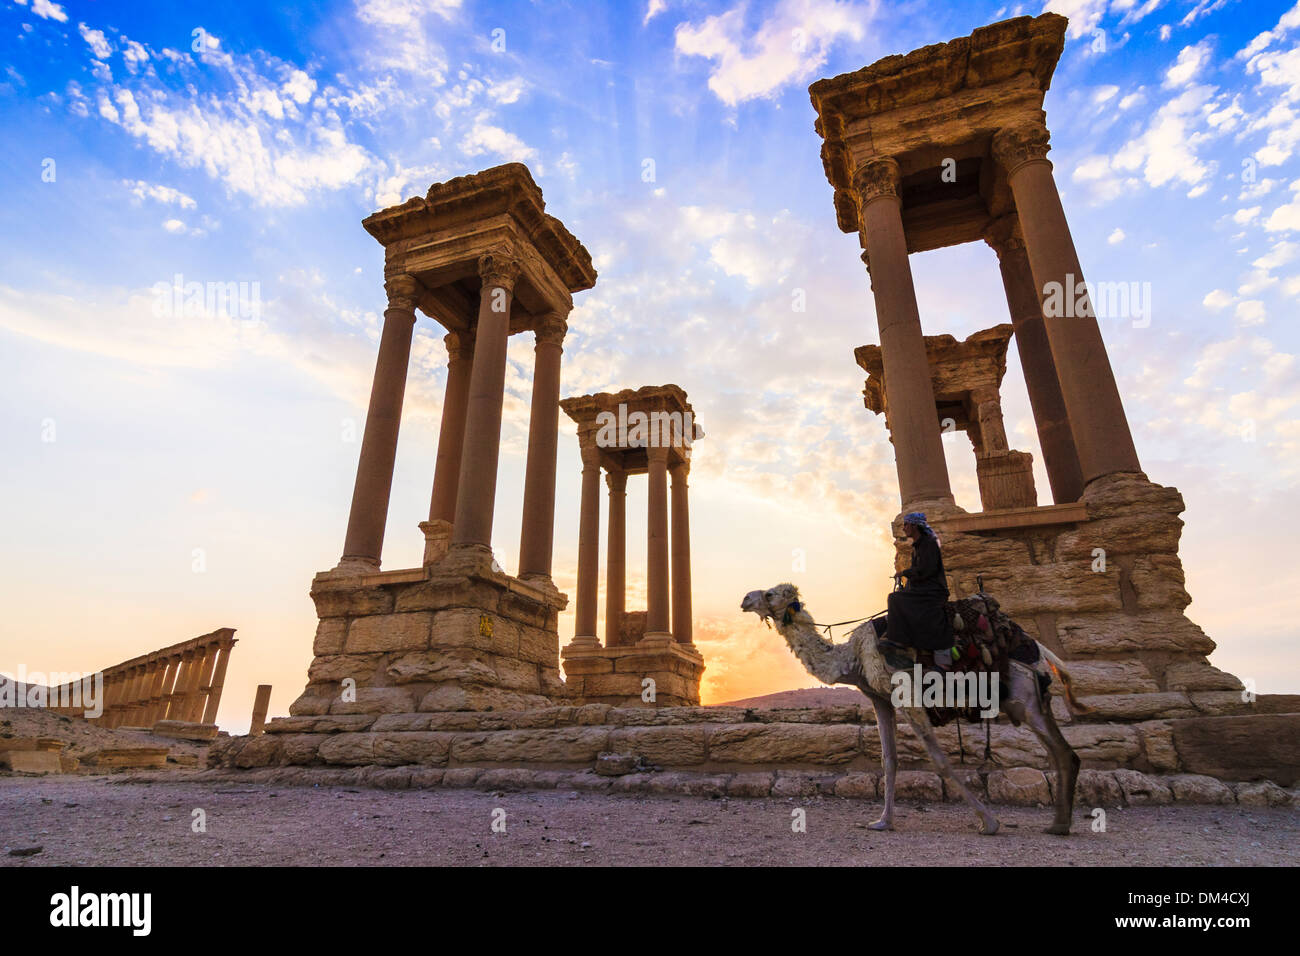 Man on camel at sunset beside the Tetrapylon of the ruins at Palmyra, Syria - Stock Image